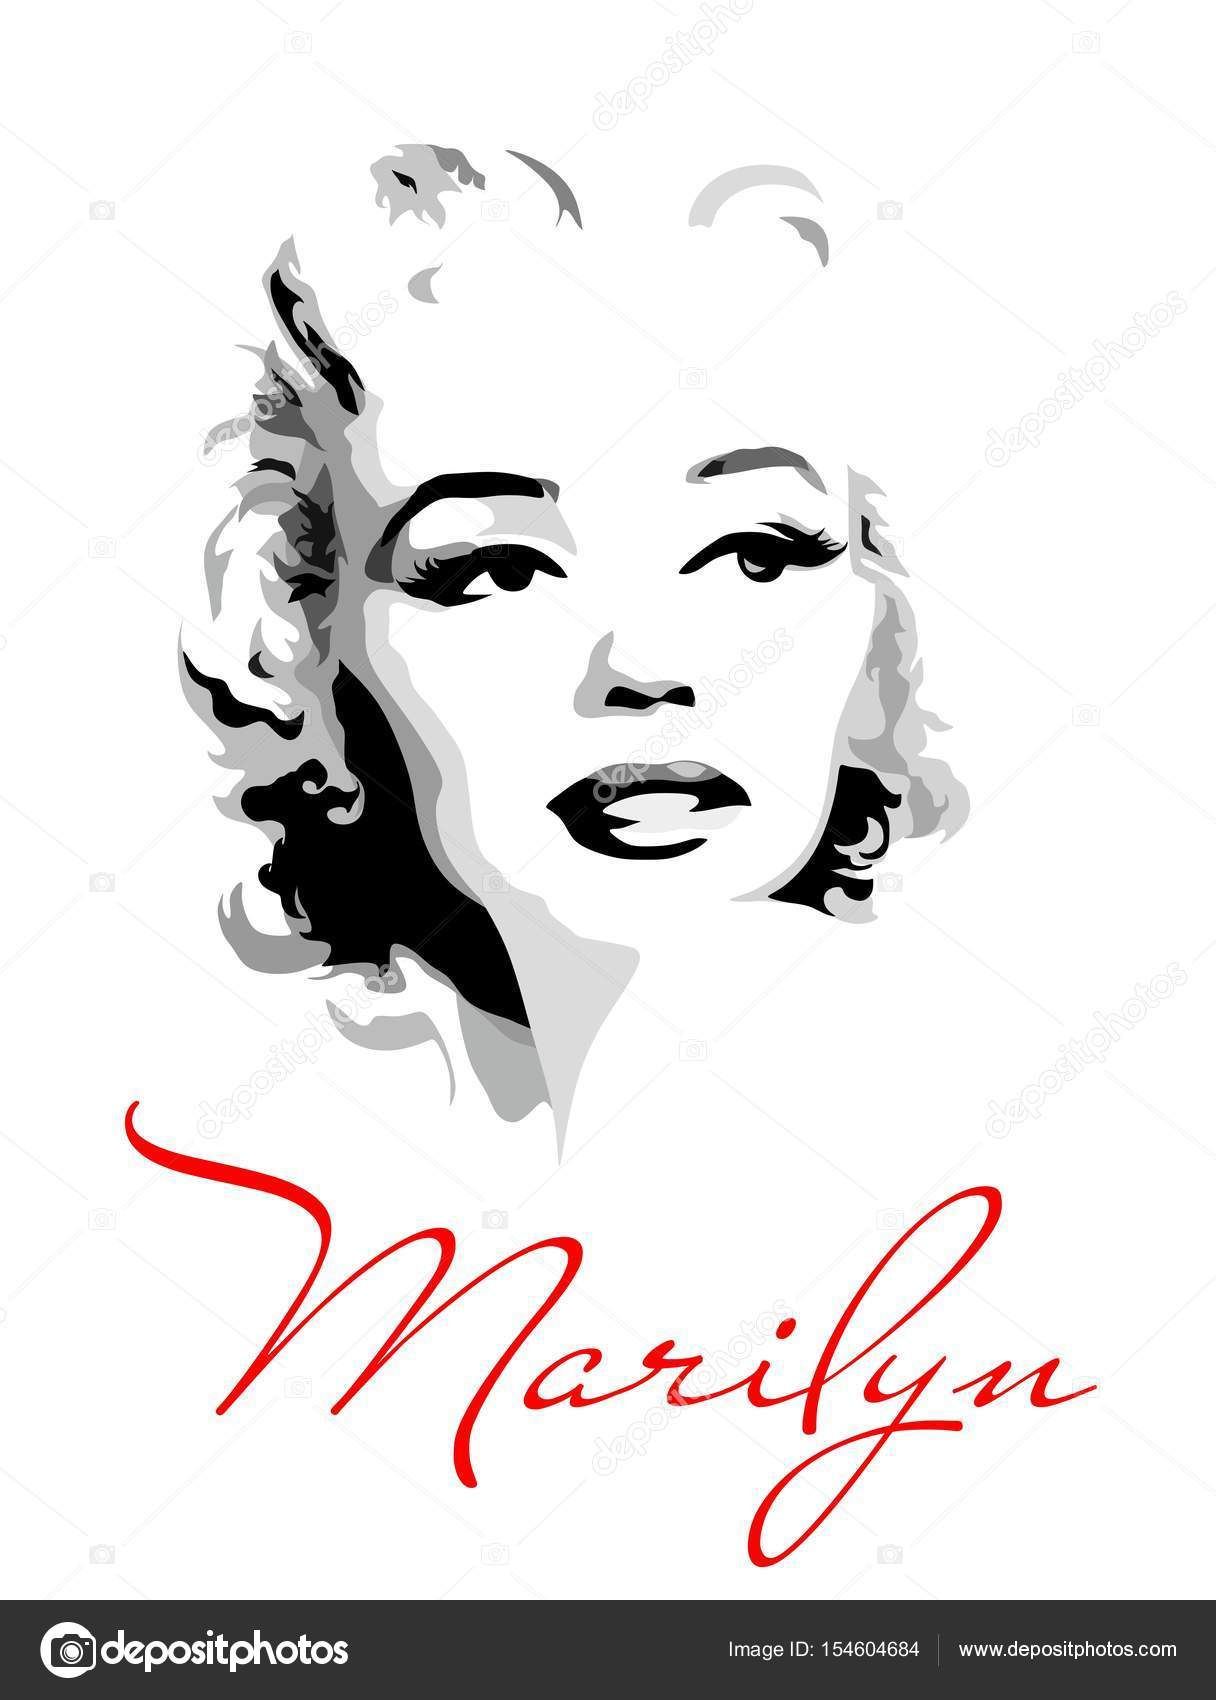 marilyn monroe vector stock vectors royalty free marilyn monroe vector illustrations depositphotos https depositphotos com 154604684 stock illustration marilyn monroe black and white html